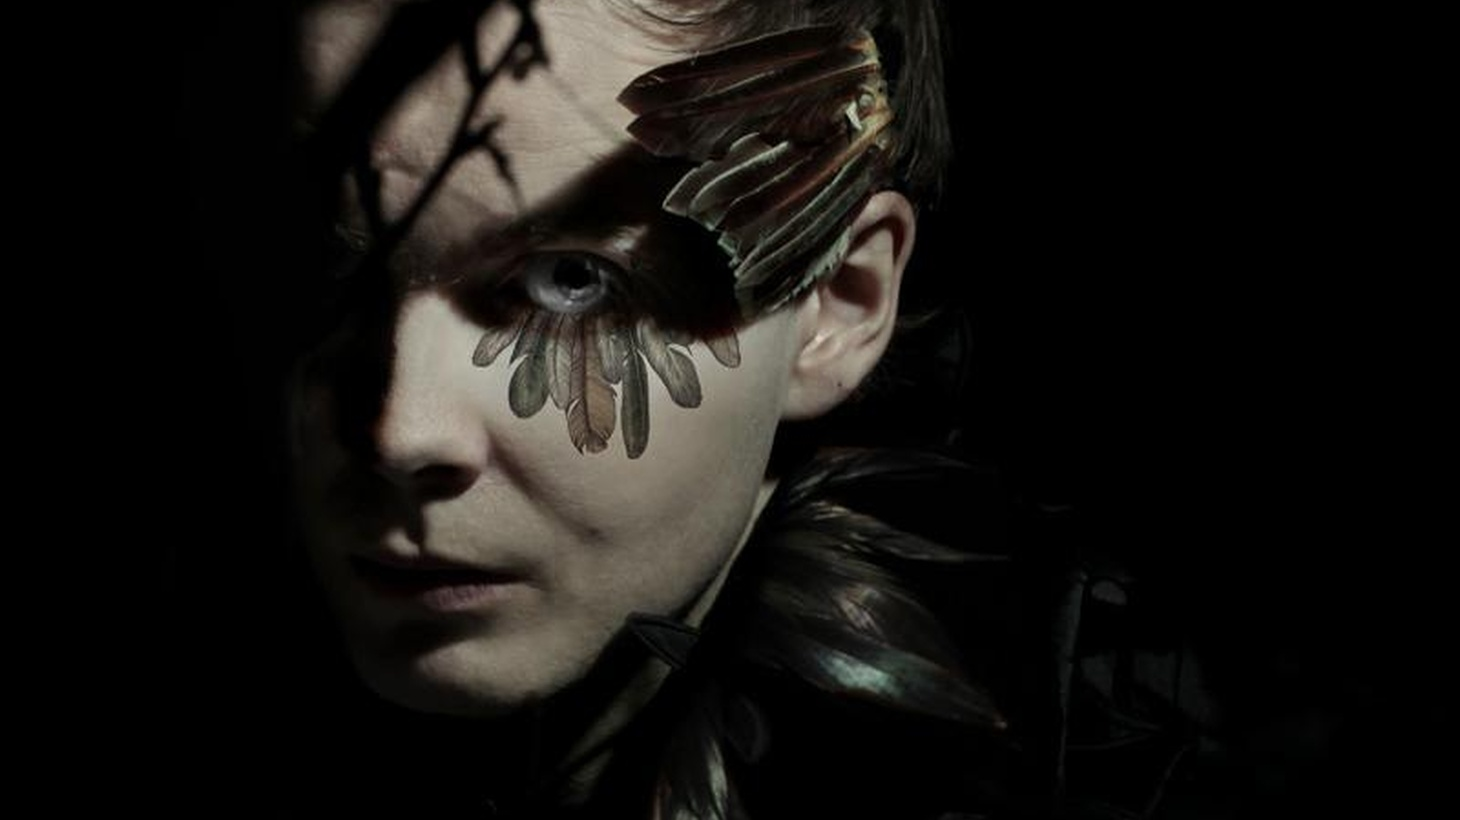 Sigur Ros frontman Jonsi brings the joyful sound of his solo project to Morning Becomes Eclectic listeners at 11:15am.